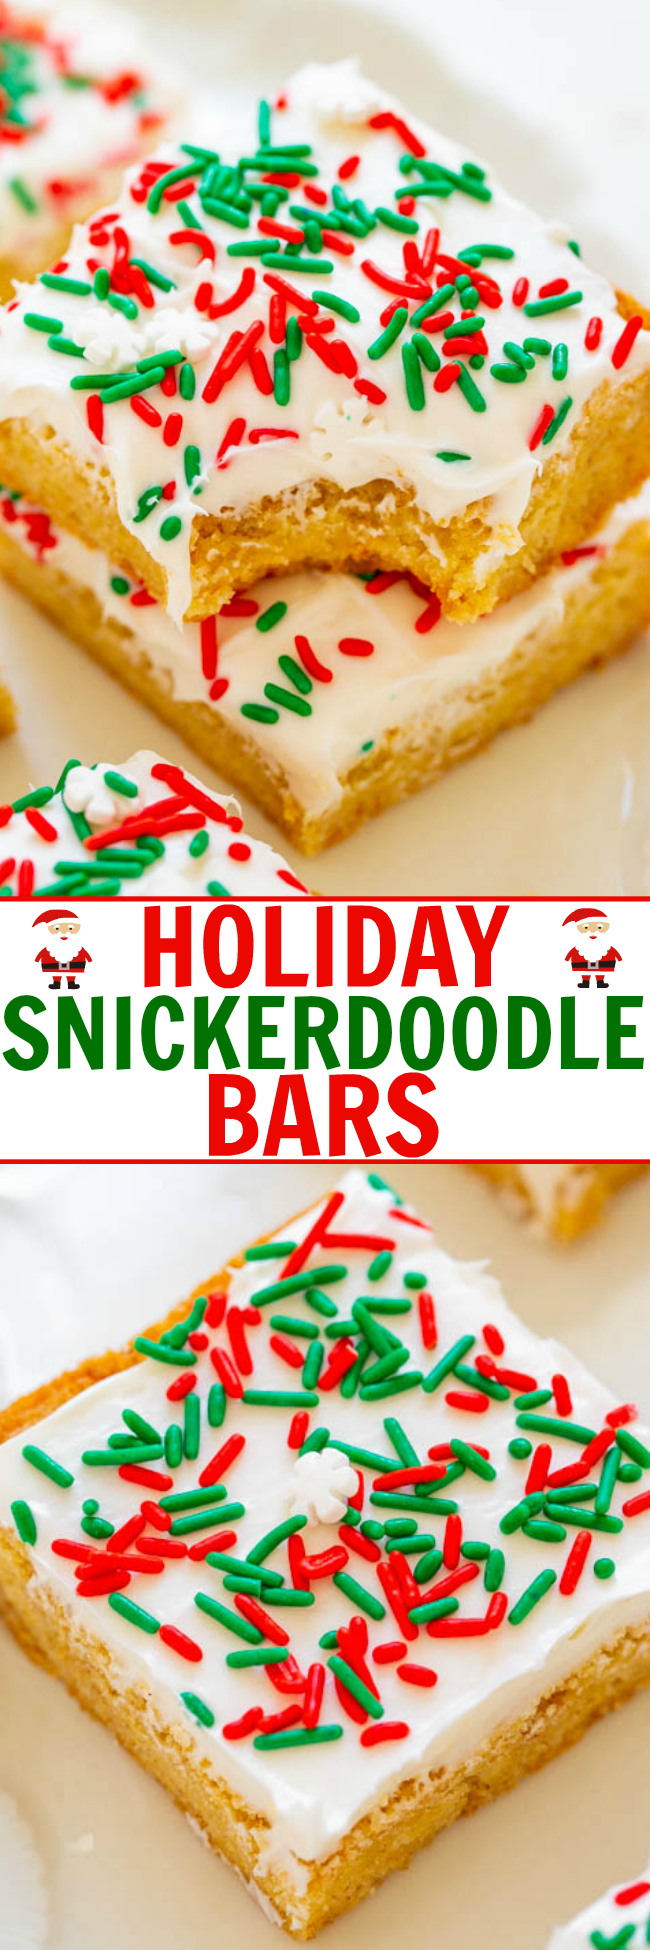 Snickerdoodle Bars with Cream Cheese Frosting – Snickerdoodle bars are so much FASTER AND EASIER than making snickerdoodle cookies!! The sprinkles and tangy cream cheese frosting will put everyone in the holiday spirit!!